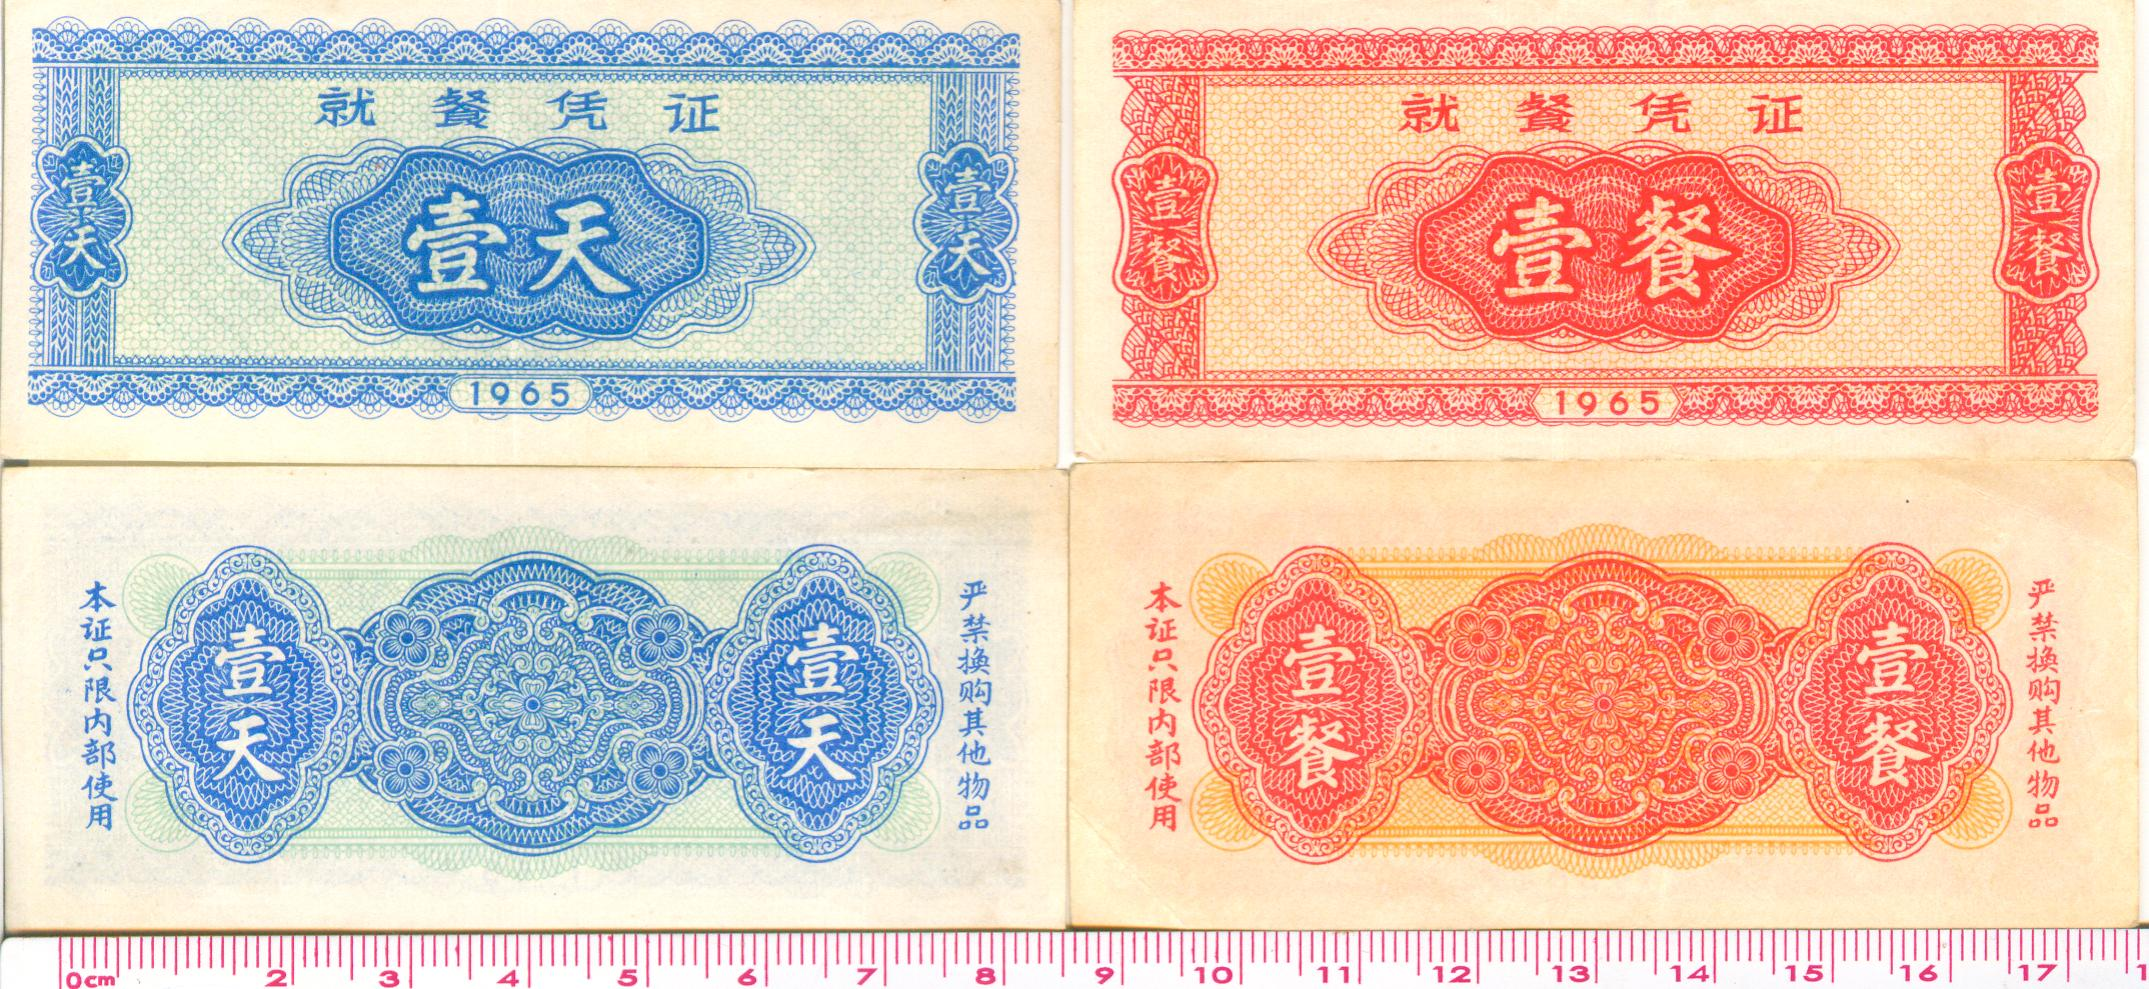 H0020, China Military Food Ration Coupons--Vietnam War 2 pcs, 1965 Scarce